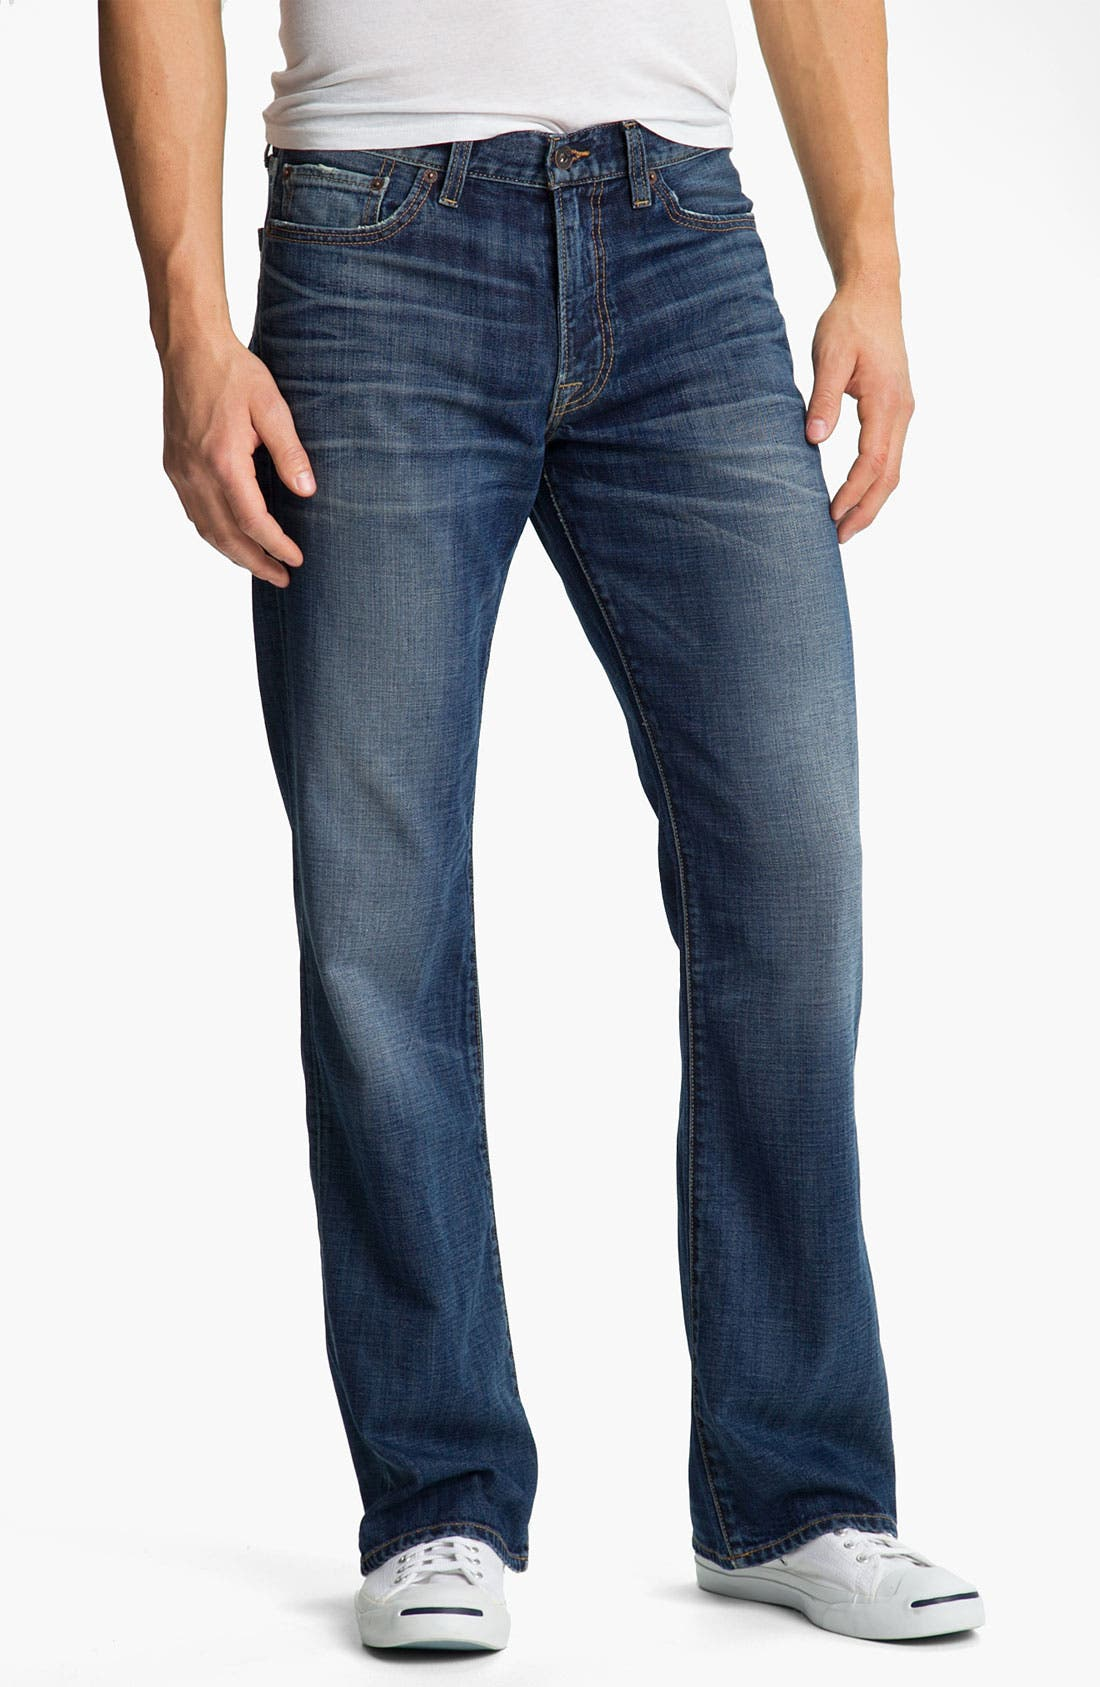 Main Image - Lucky Brand Bootcut Jeans (Medium Edwin Warner)